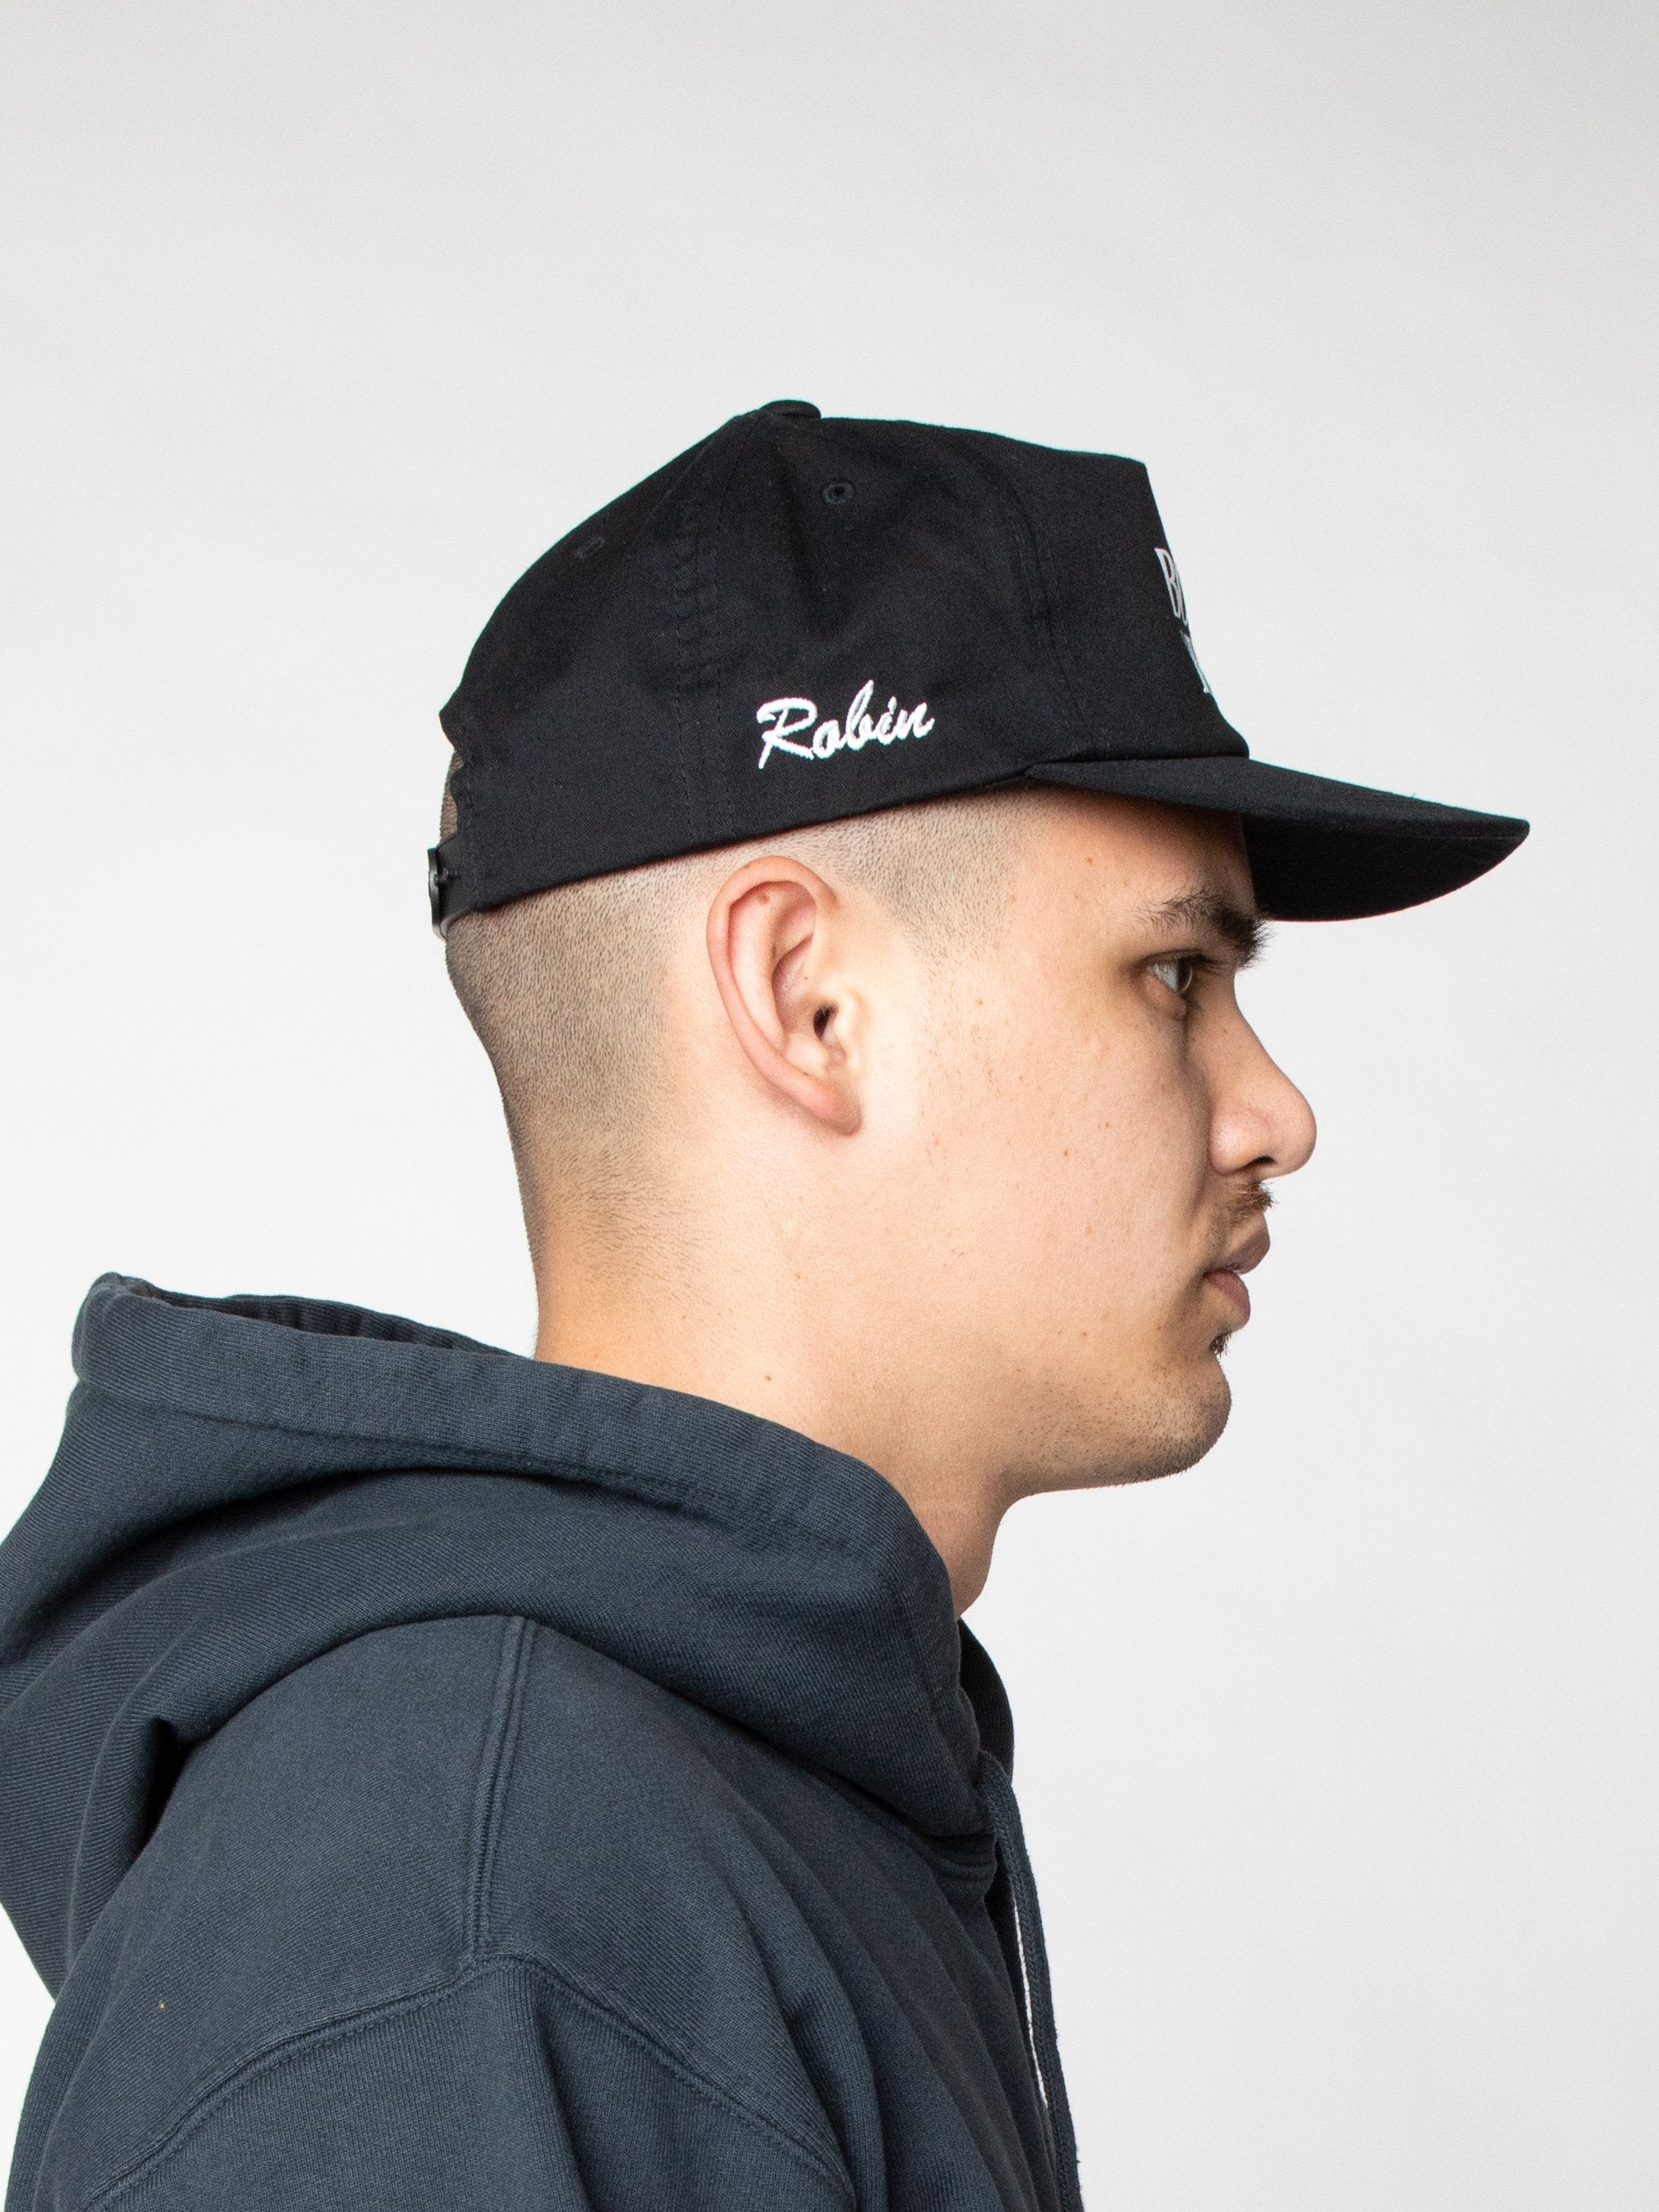 Black Body Heat / Robin Cap 5